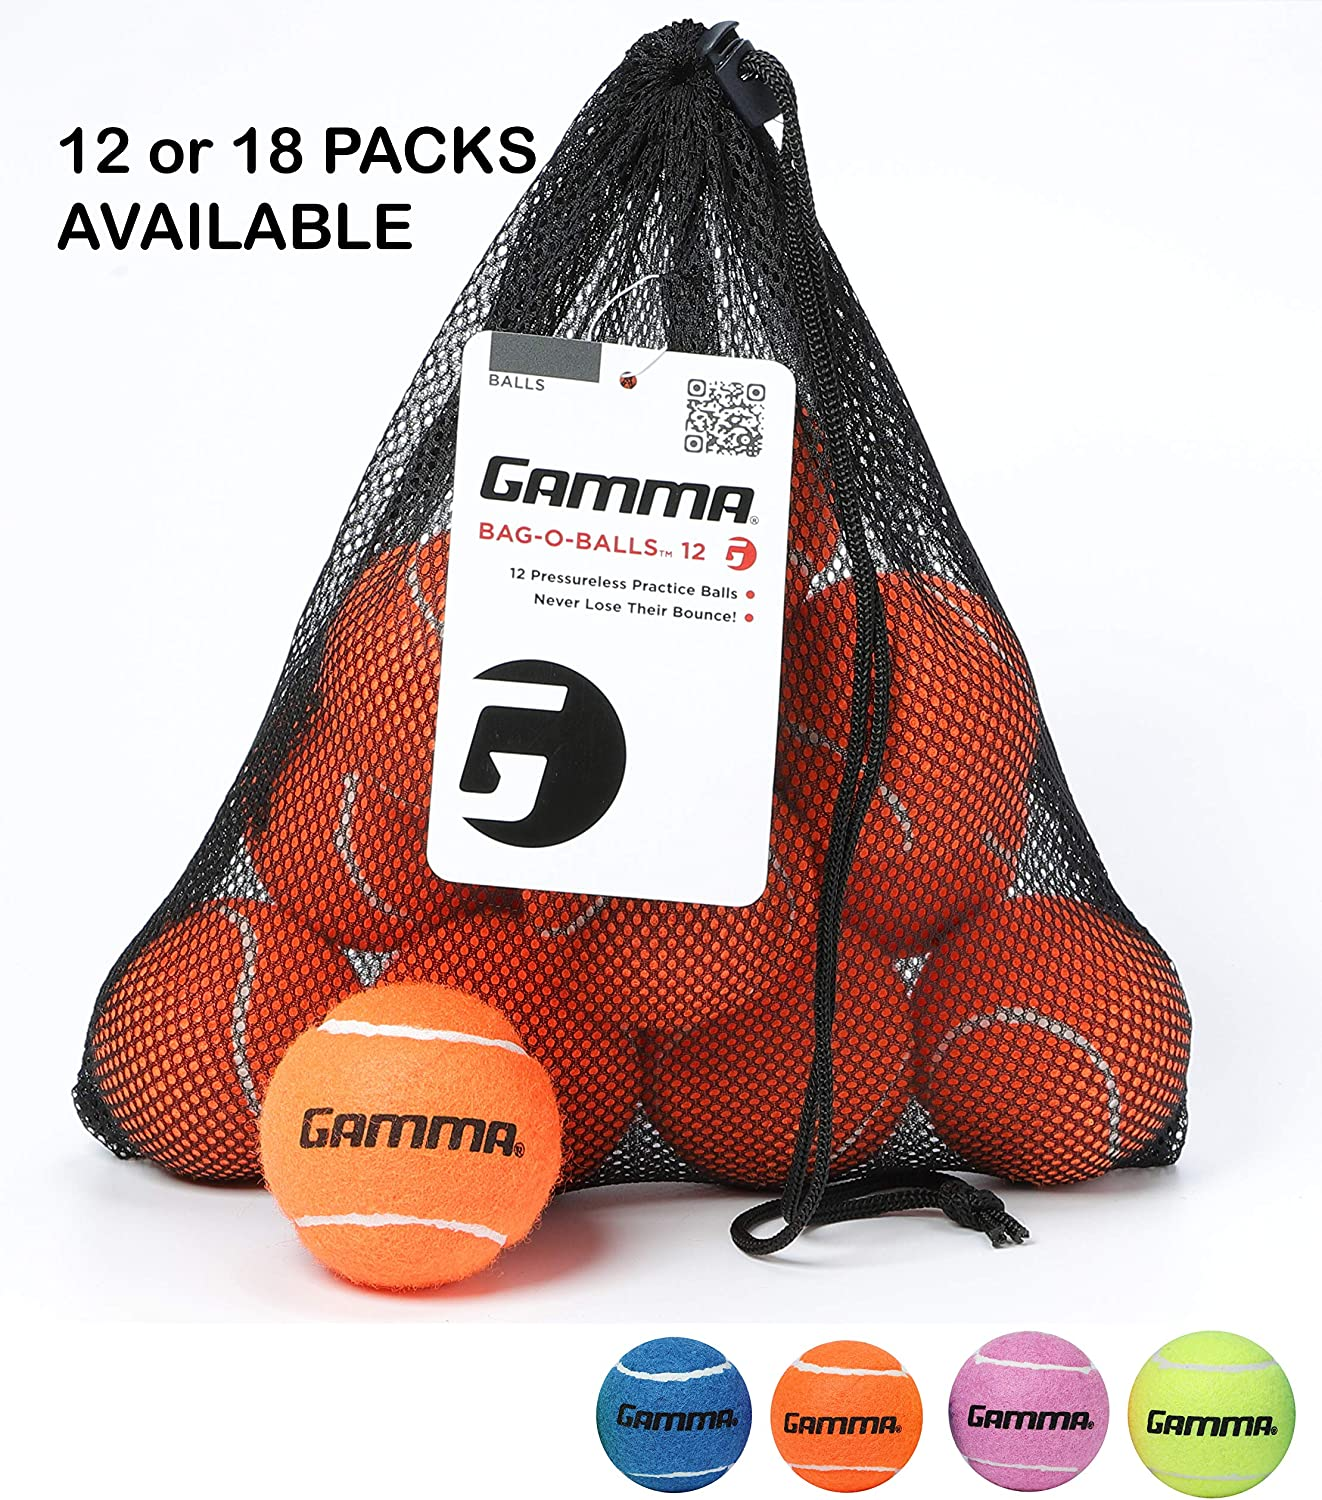 Sturdy /& Reuseable Mesh Bag with Drawstring for Easy Transport 12 or 18 Count 4 Colors Available Premium Performance Bag-O-Balls for All Court Types Gamma Bag of Pressureless Tennis Balls